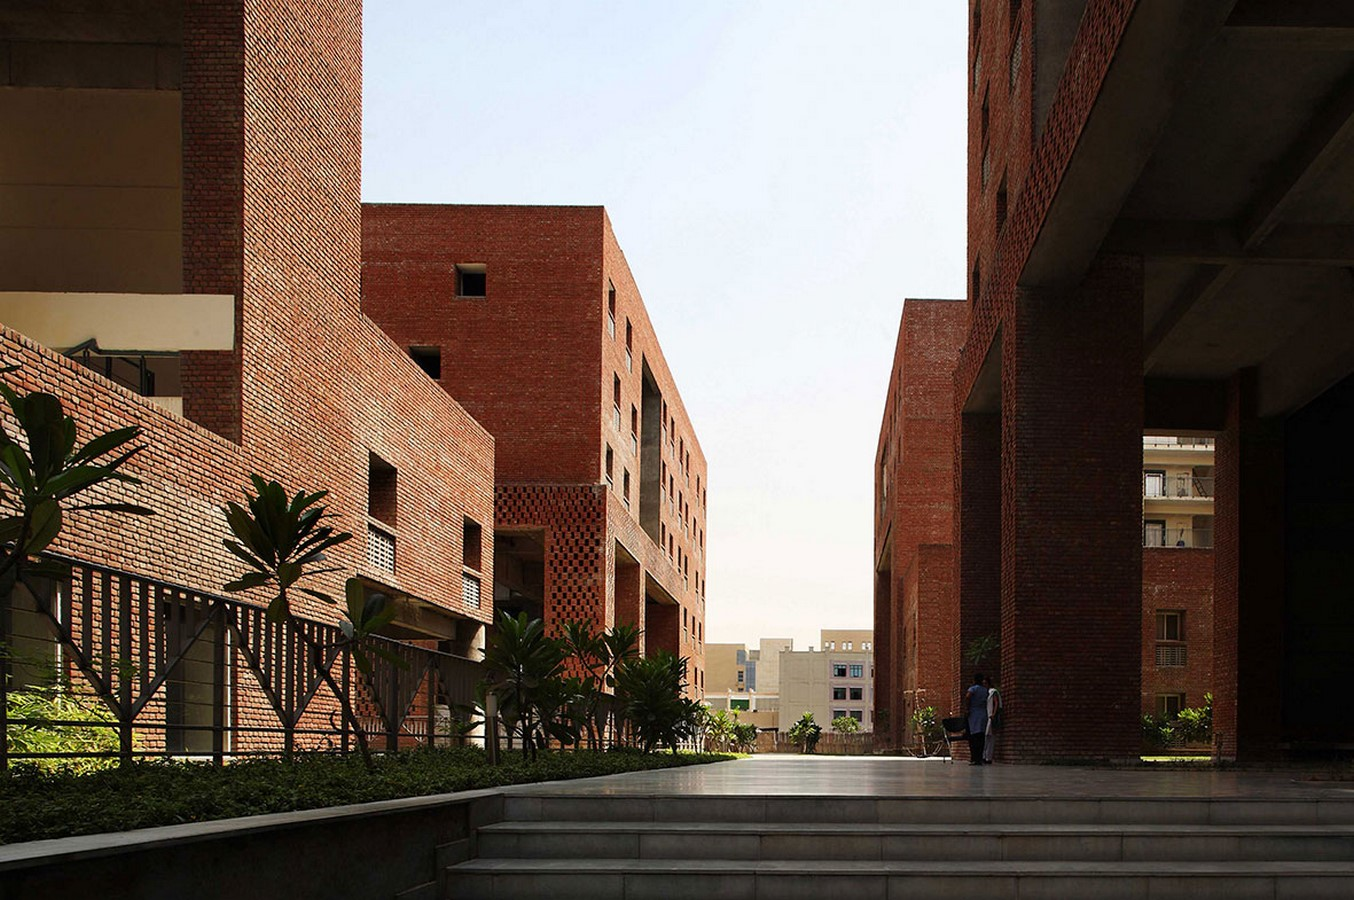 Housing Complex at Institute for Integrated Learning in Management by Morphogenesis- Inspired by Shahjahanabad settlement - Sheet3